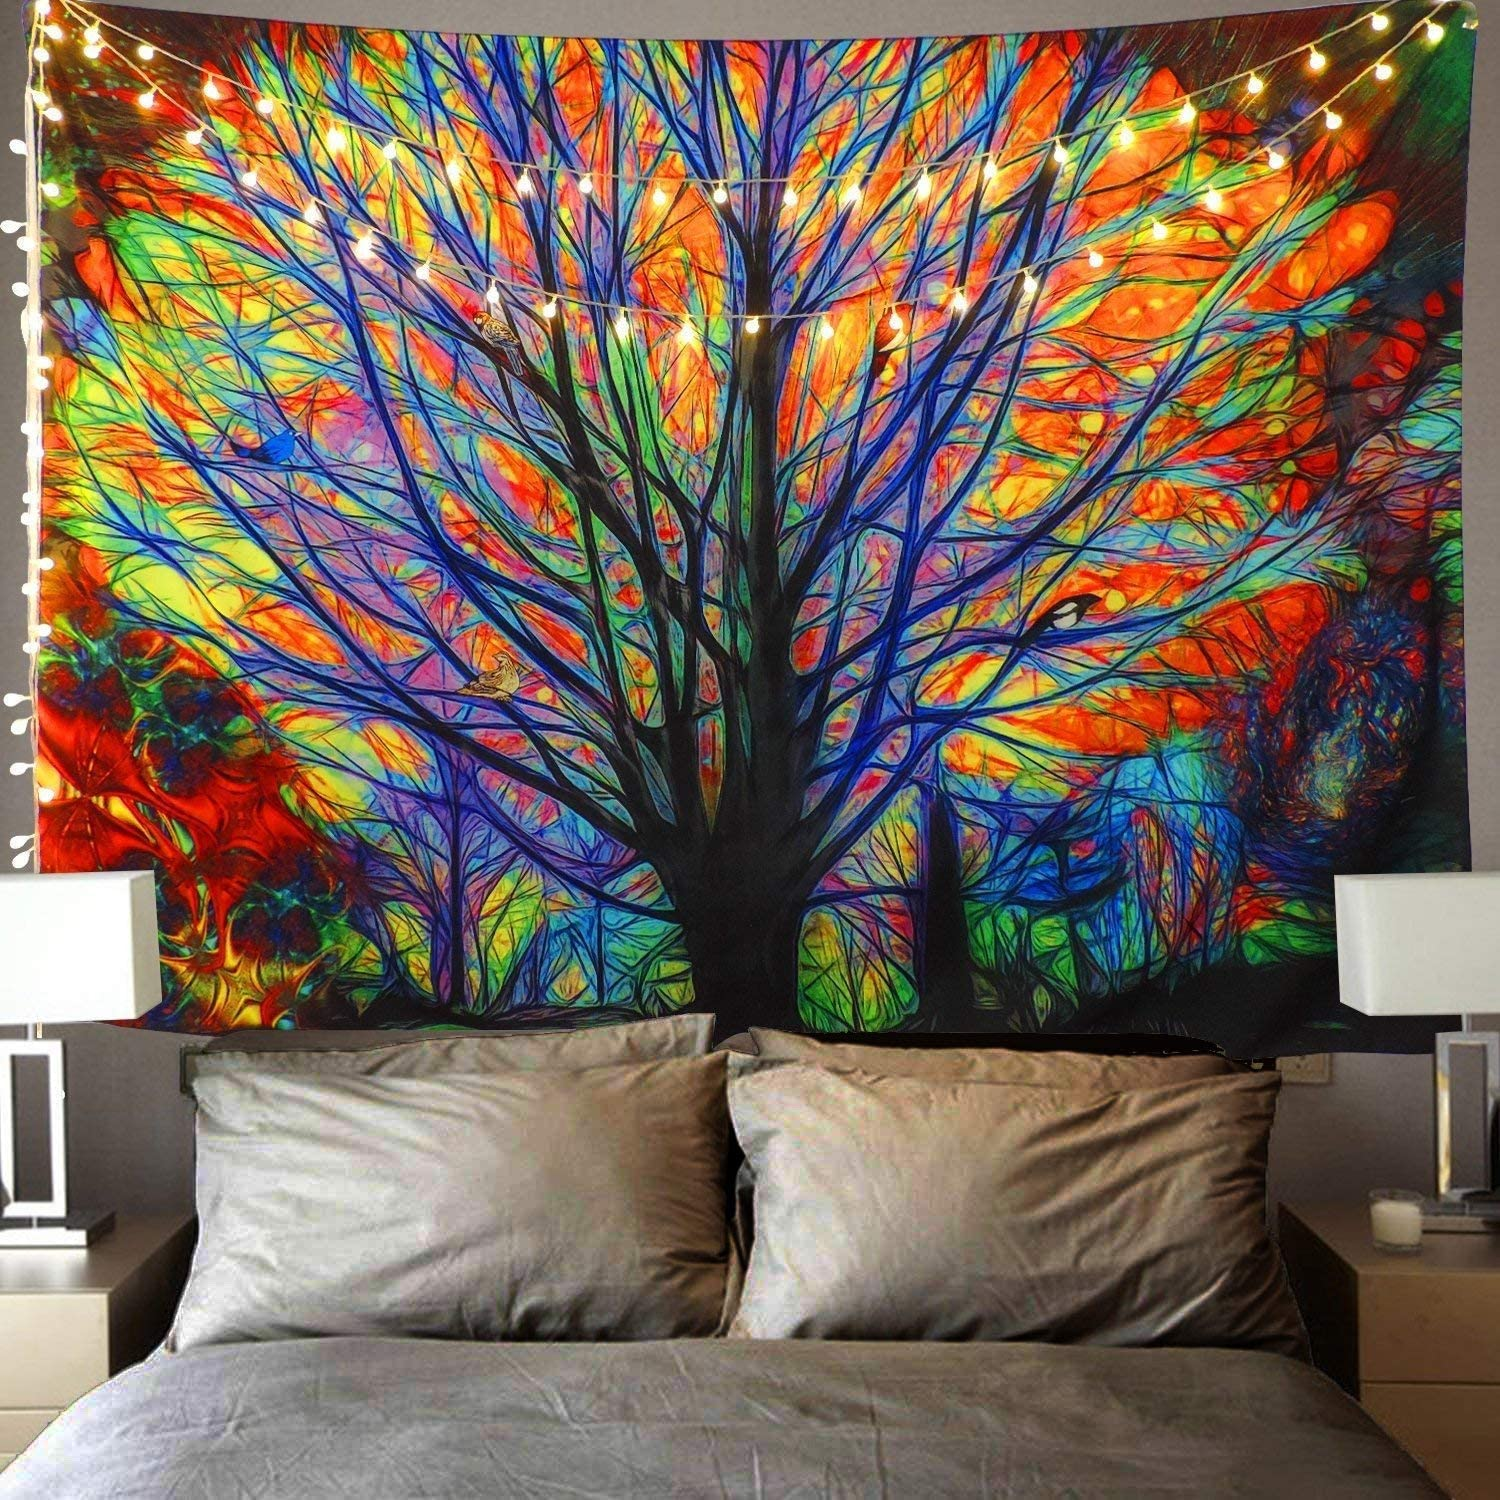 """Cpaoo Tapestries Wall Hanging Wall Decor Hippie Tapestries Bohemian Mandala Colorful Tree Psychedelic Animate Forest with Birds Art Backdrop for Bedroom Dorm Decor, The Tree (59"""" x 51"""")"""